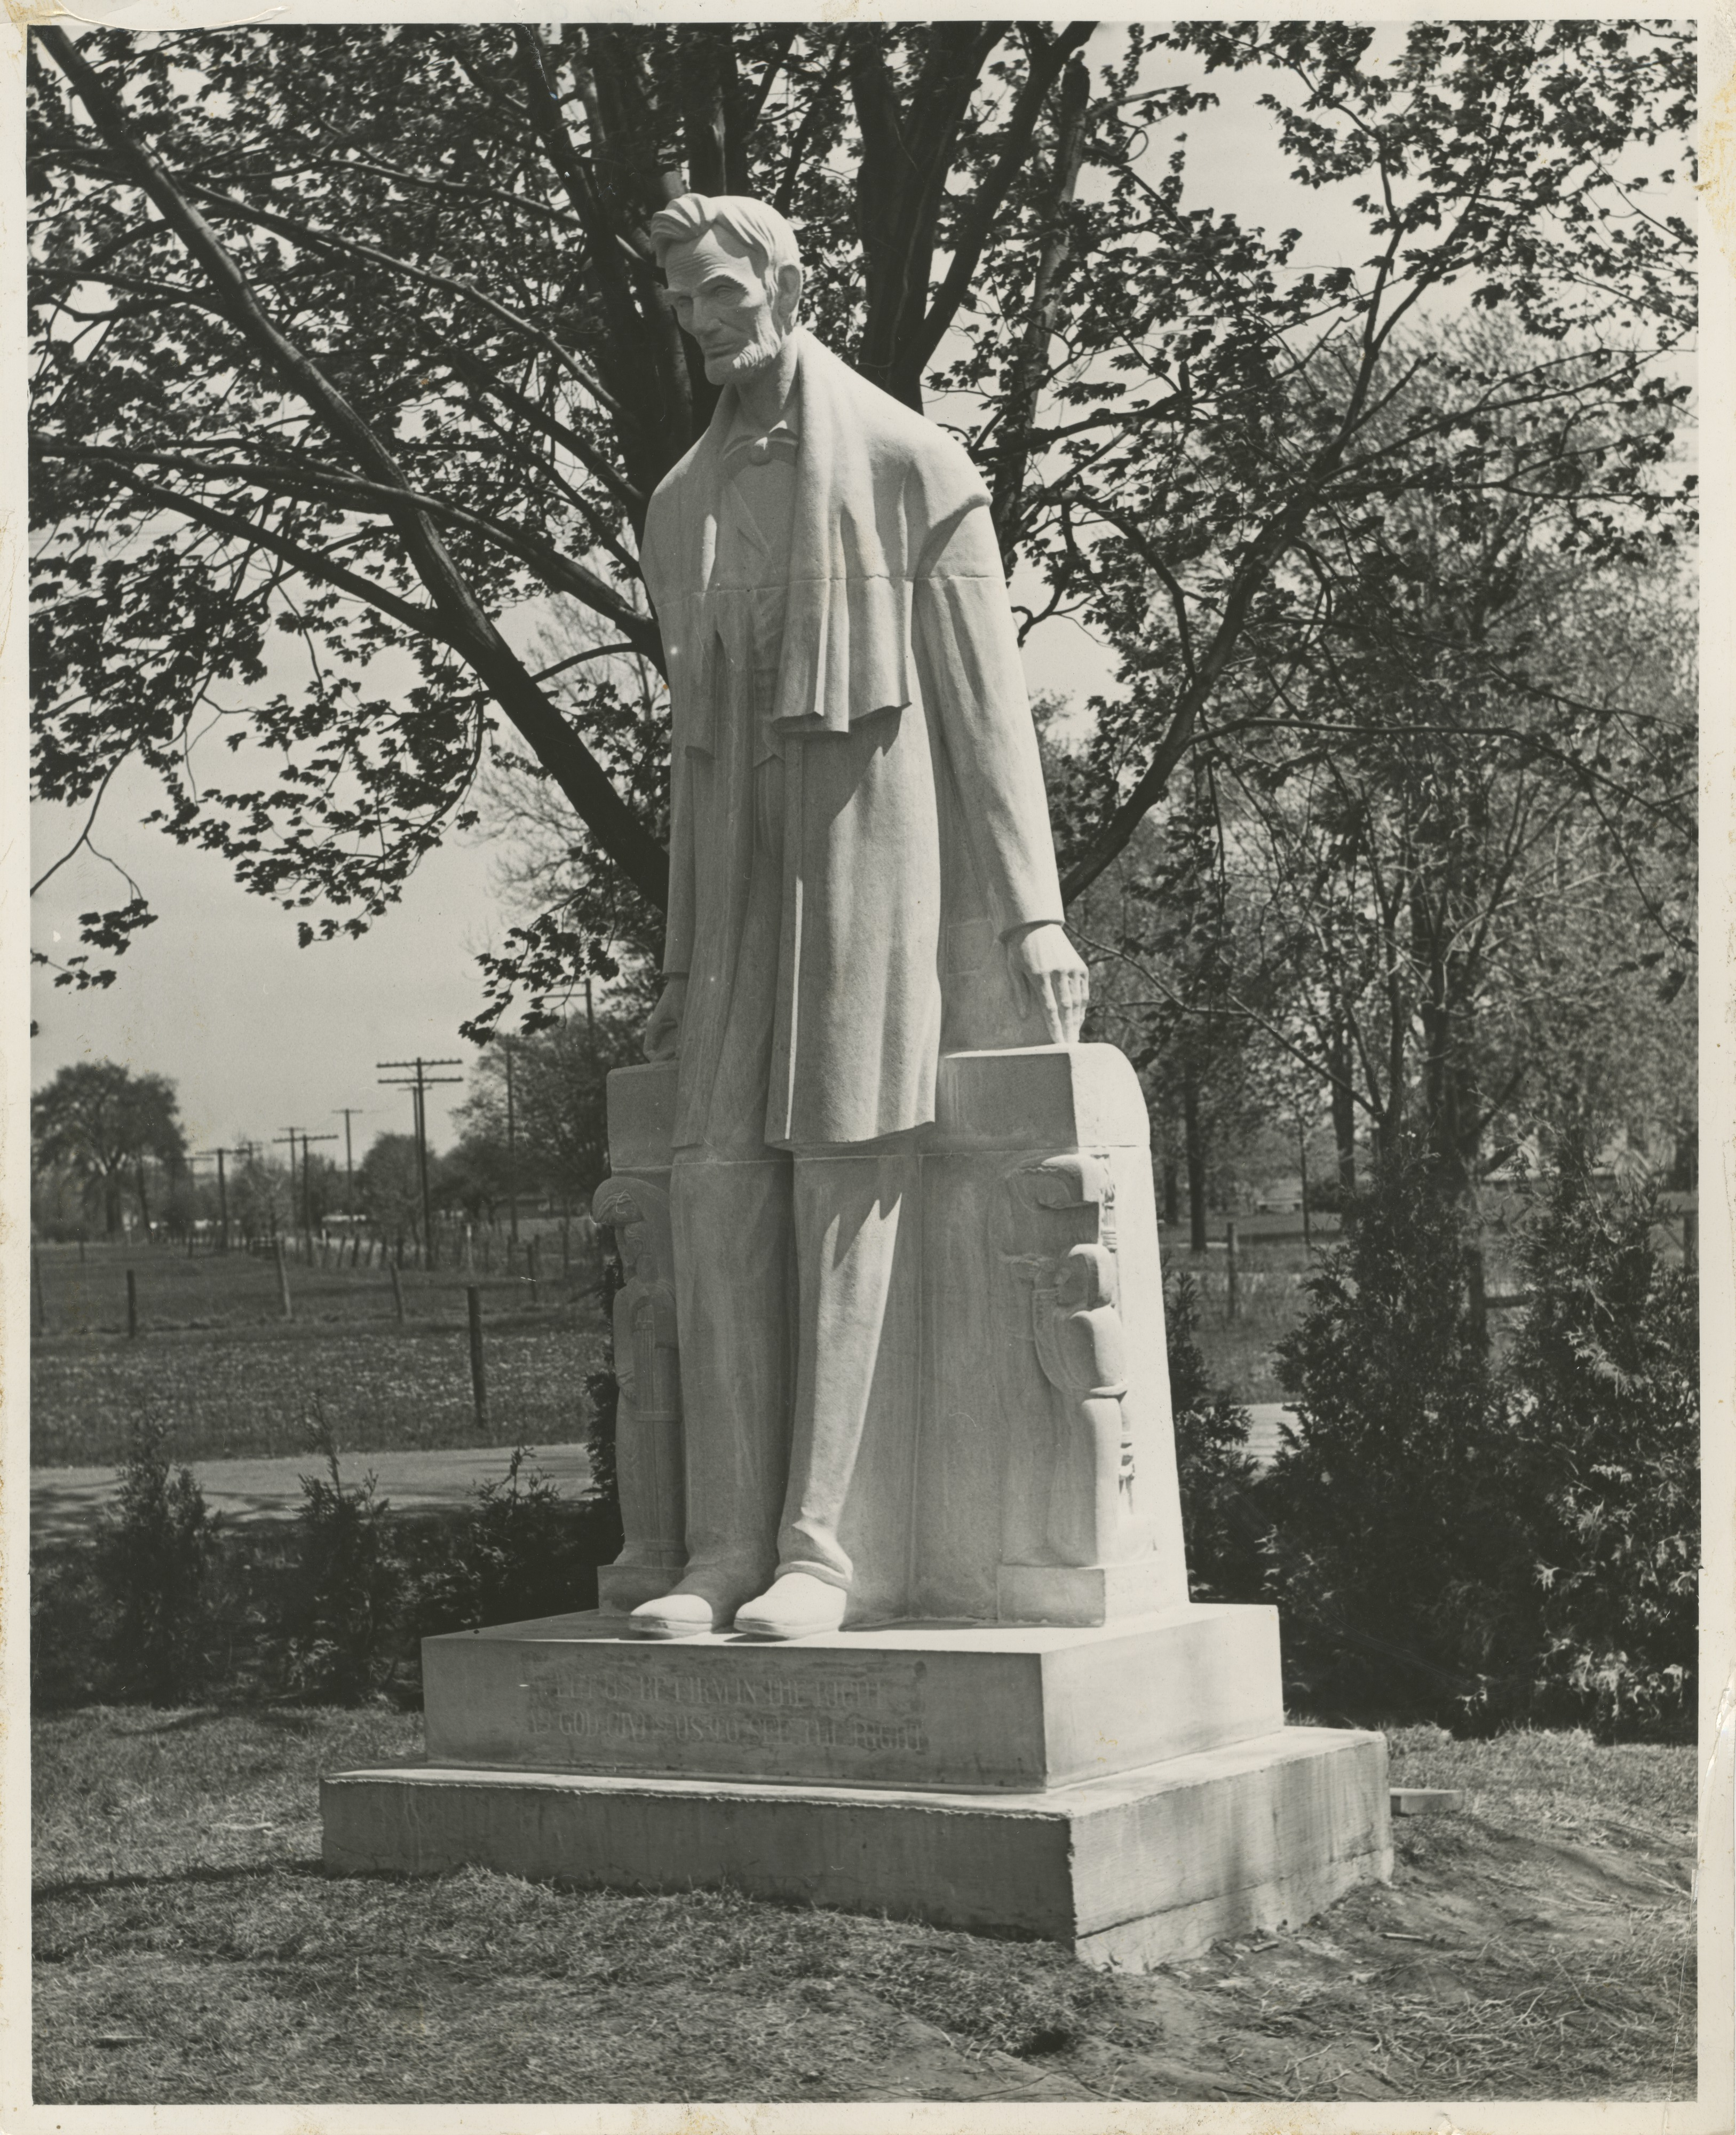 Lincoln Consolidated School Unveils Statue of Abraham Lincoln, May 1938 image